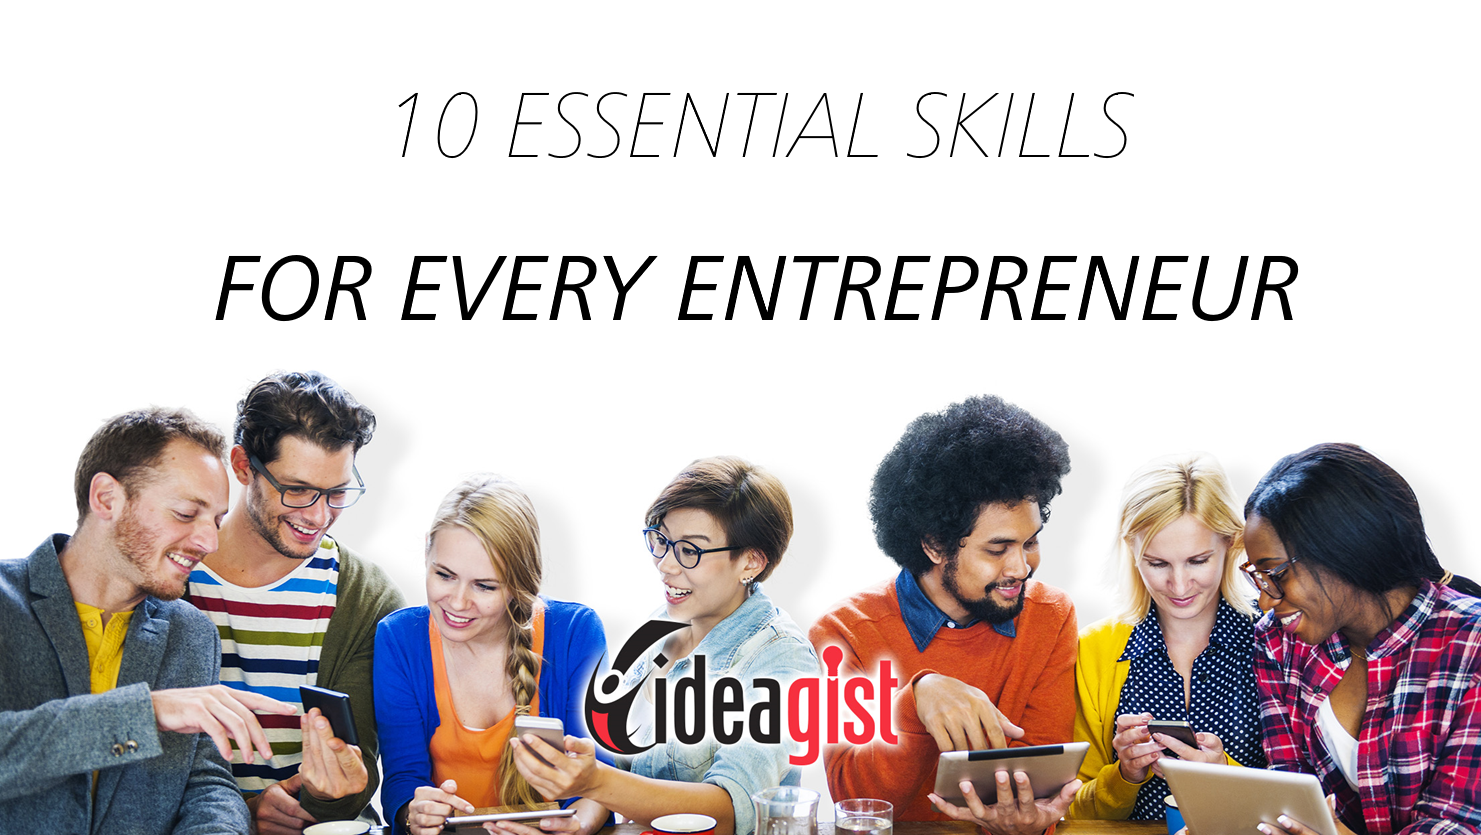 10 skills that are essential for every entrepreneur to learn